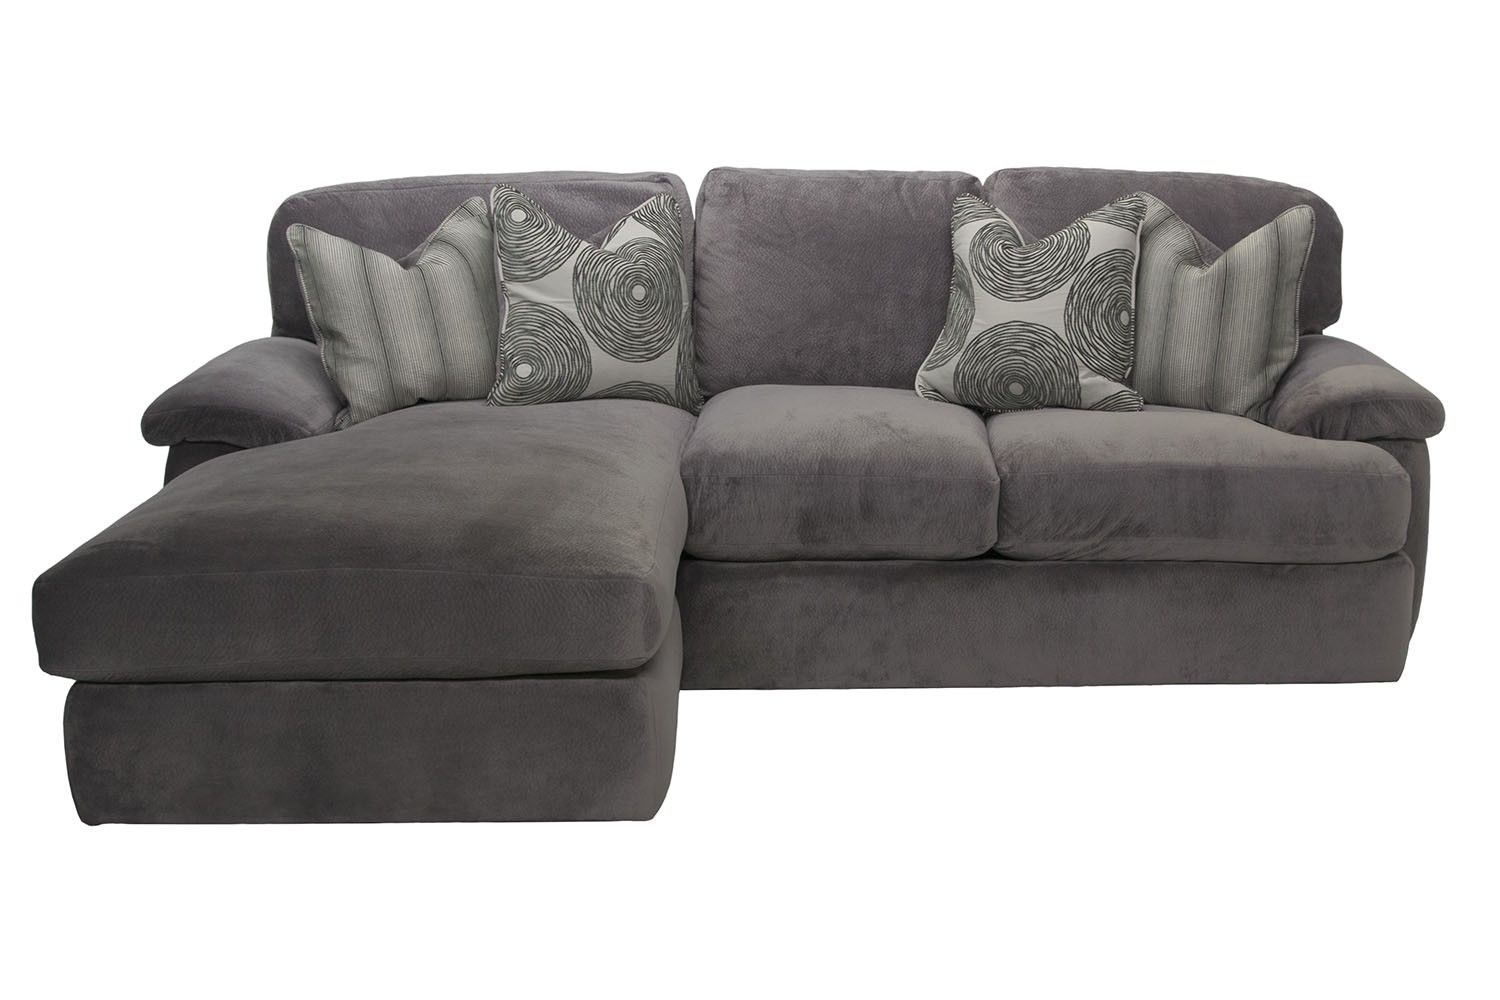 Mor Furniture For Less: Key West Right Facing Loveseat Sectional In Gray |  Mor